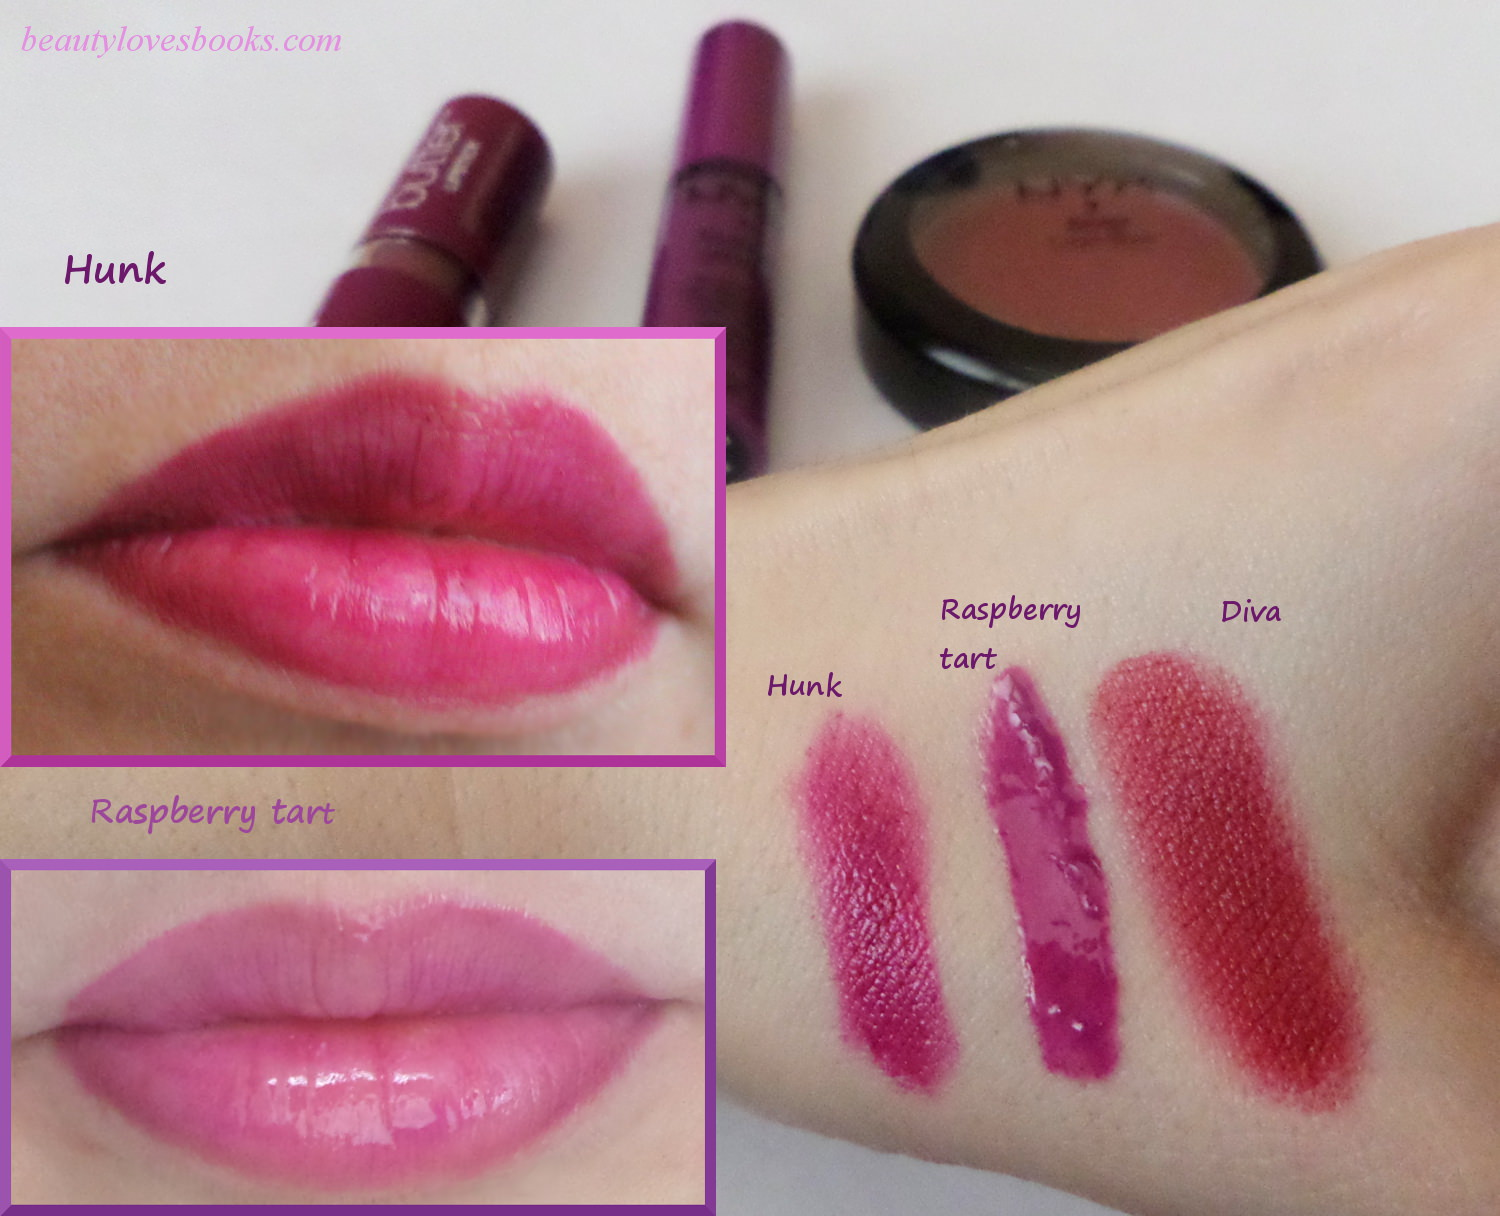 NYX Buttur gloss in Raspberry tart, NYX Butter lipstick in Hunk, NYX Cream blush in Hunk - review, swatches